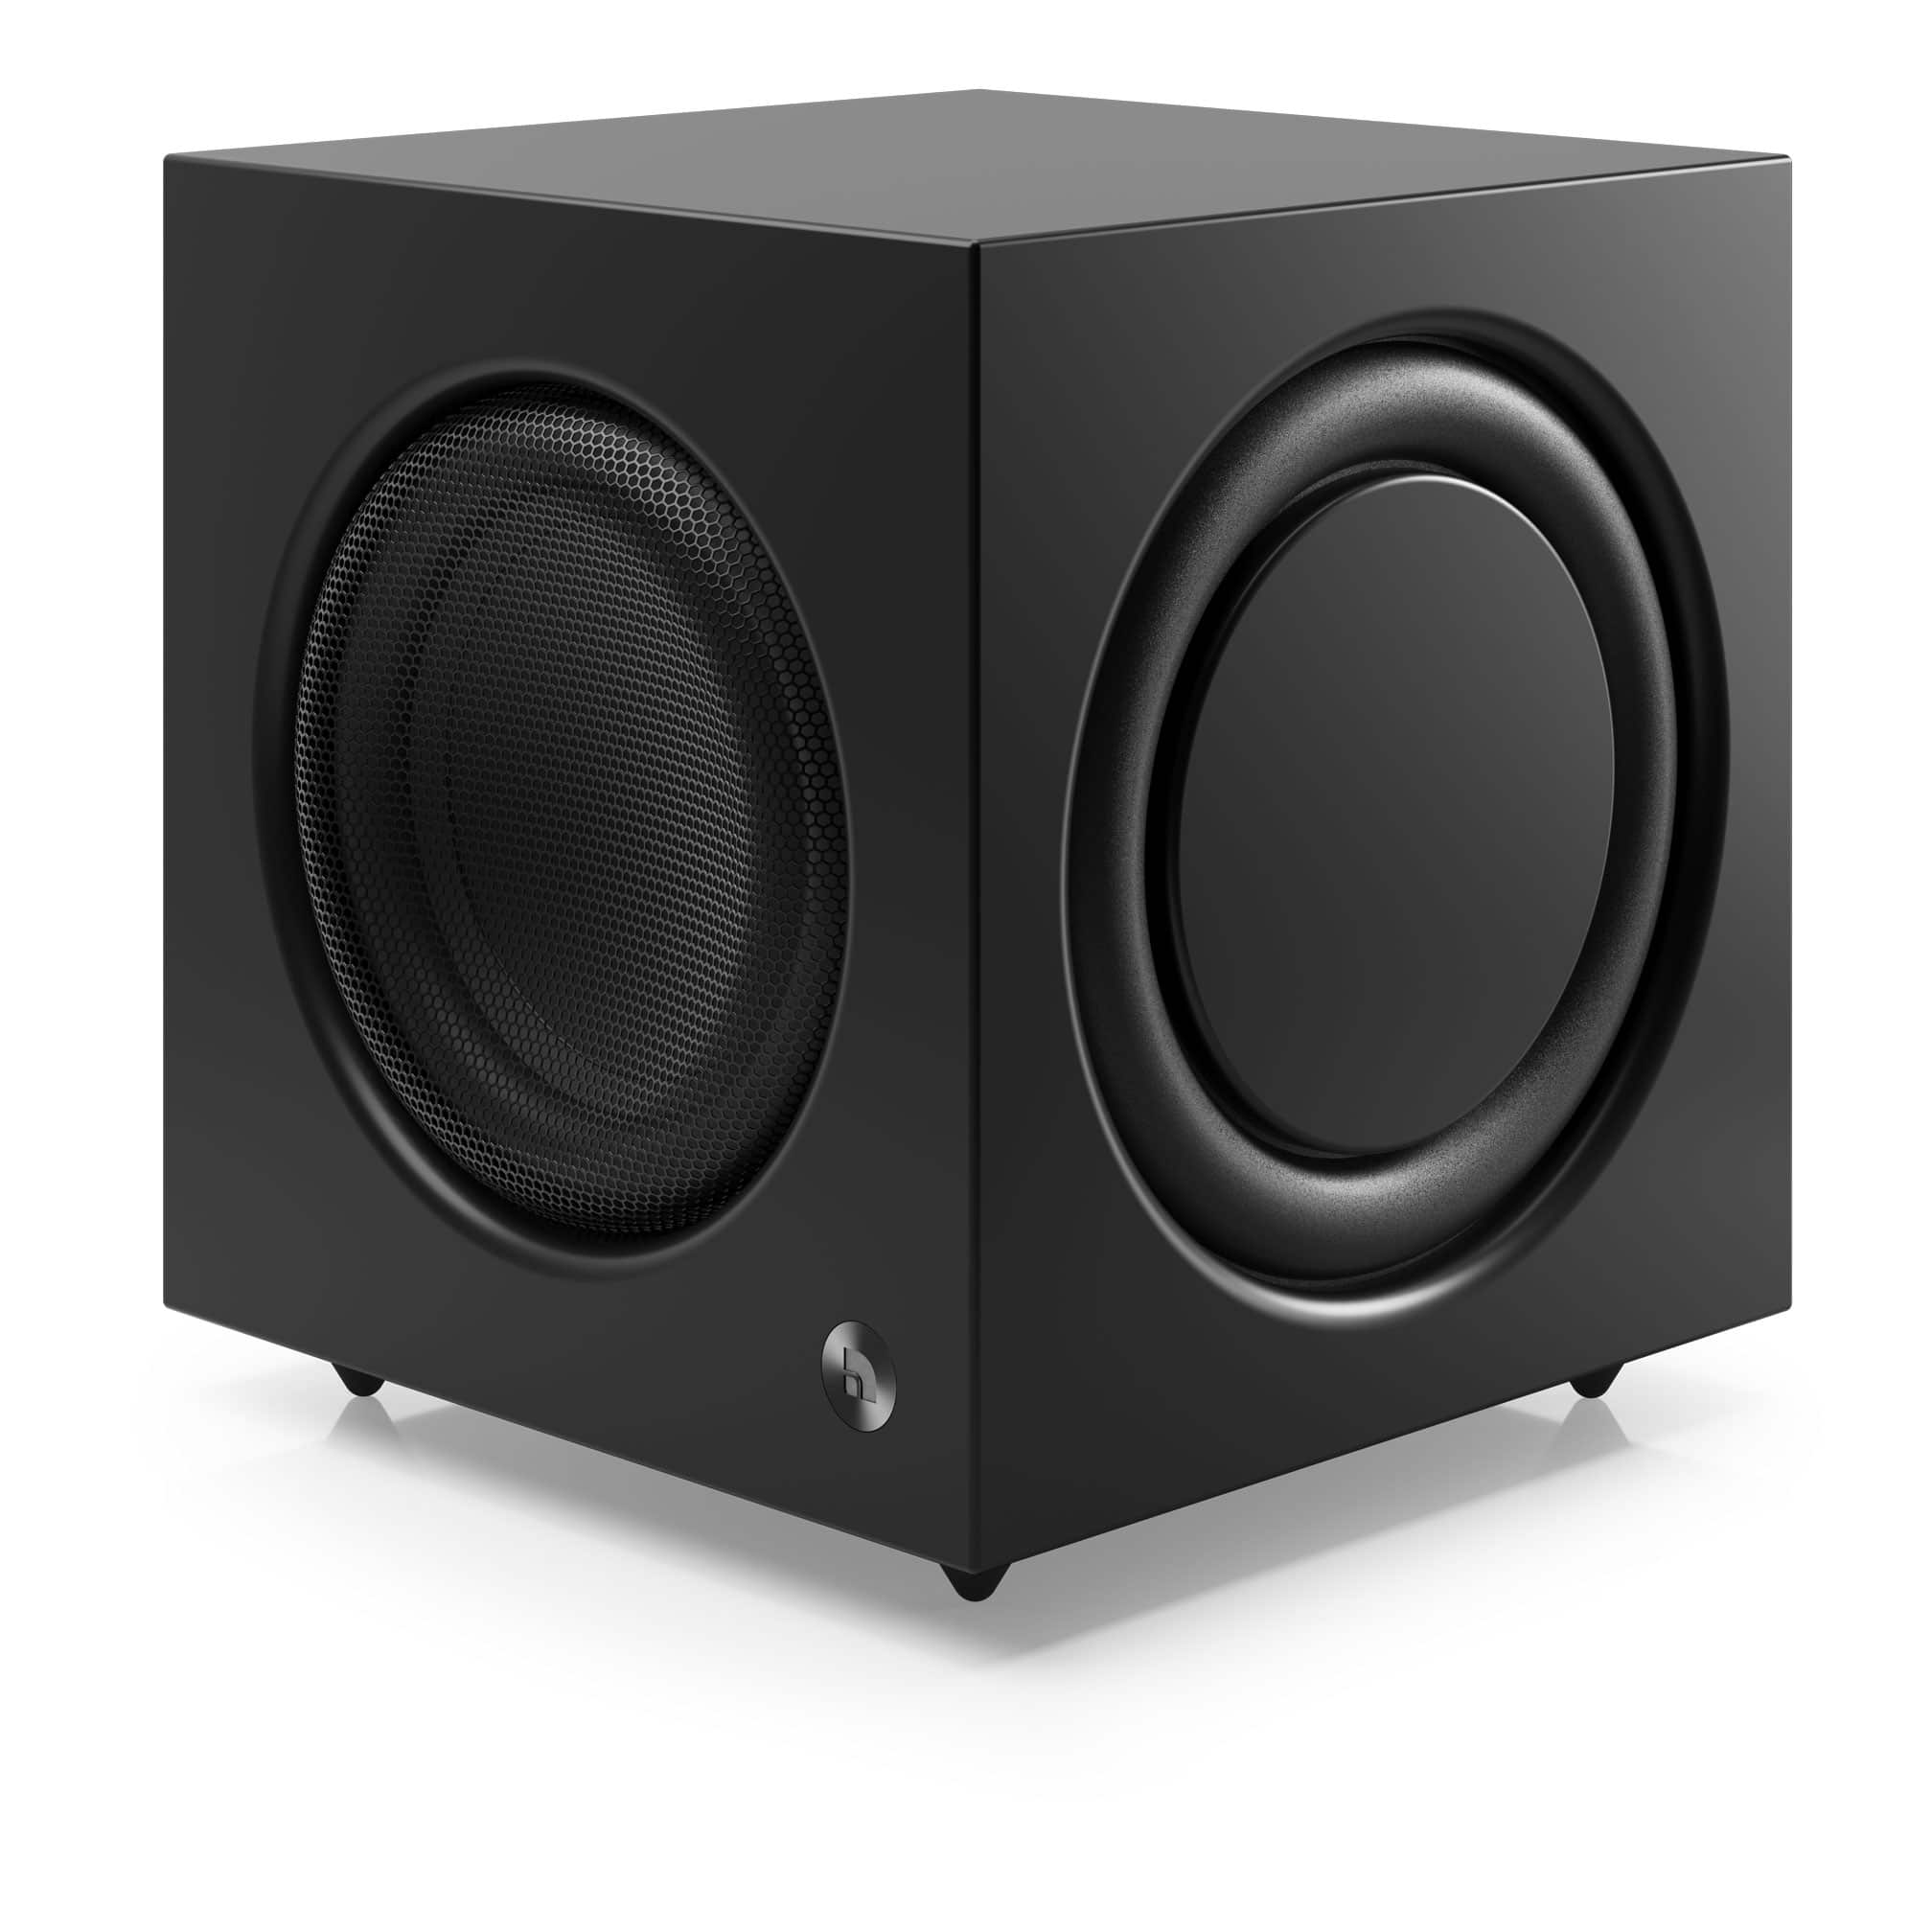 Active-subwoofer-SW-10-black-angle1-AudioPro